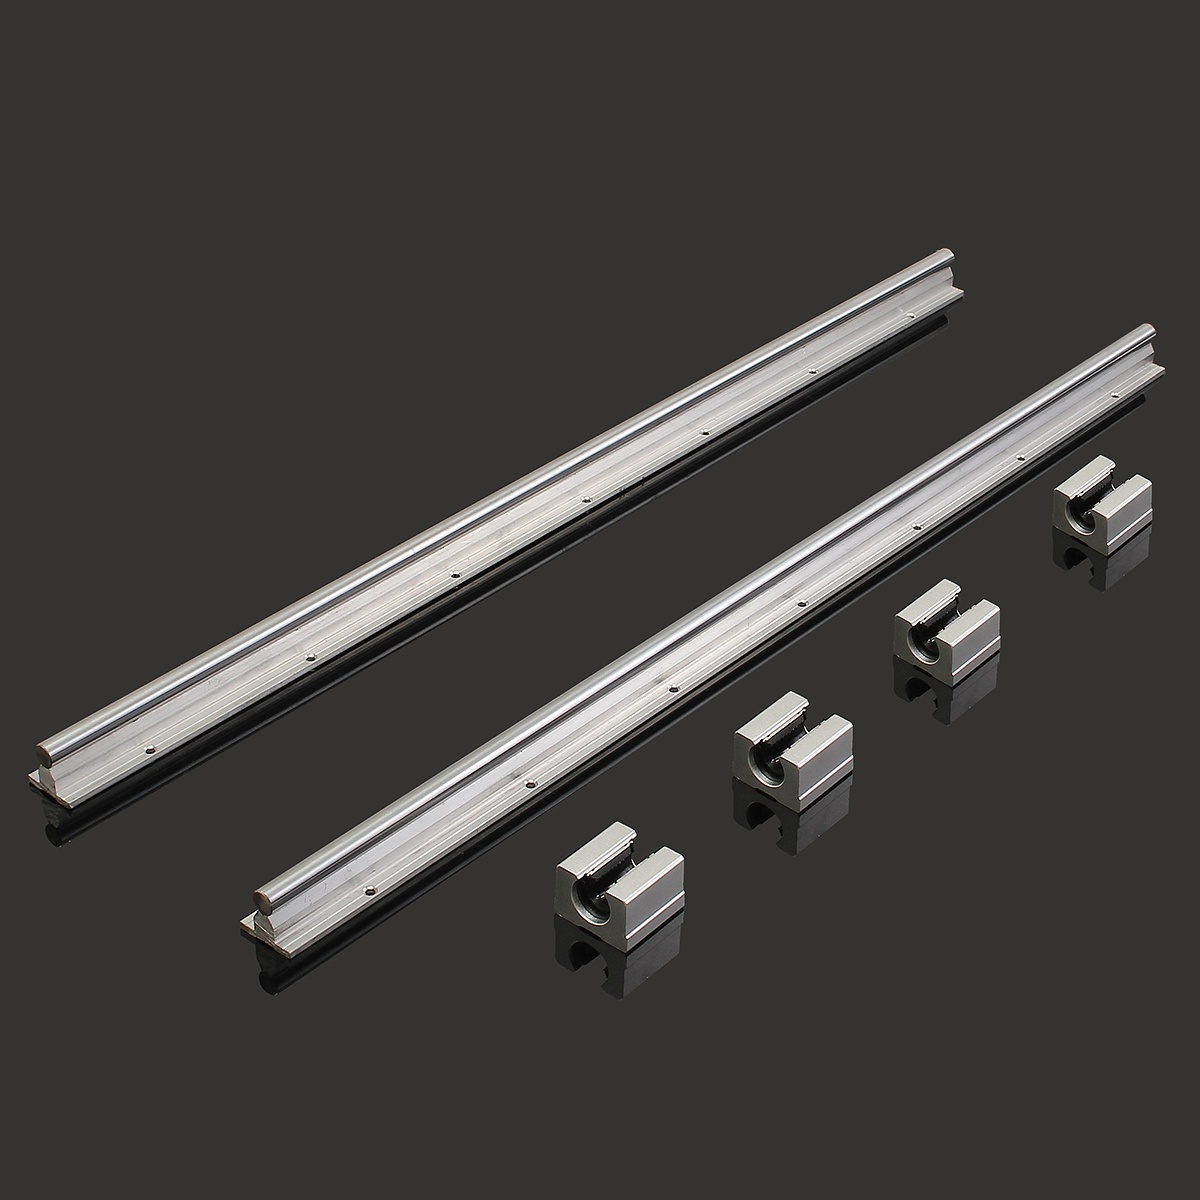 T8 300mm Stainless Steel Lead Screw Sets With Shaft Coupling And 2 D8 3d Printer Plus Nut X Sbr12 700mm 12mm Linear Bearing Rail Slide Guide